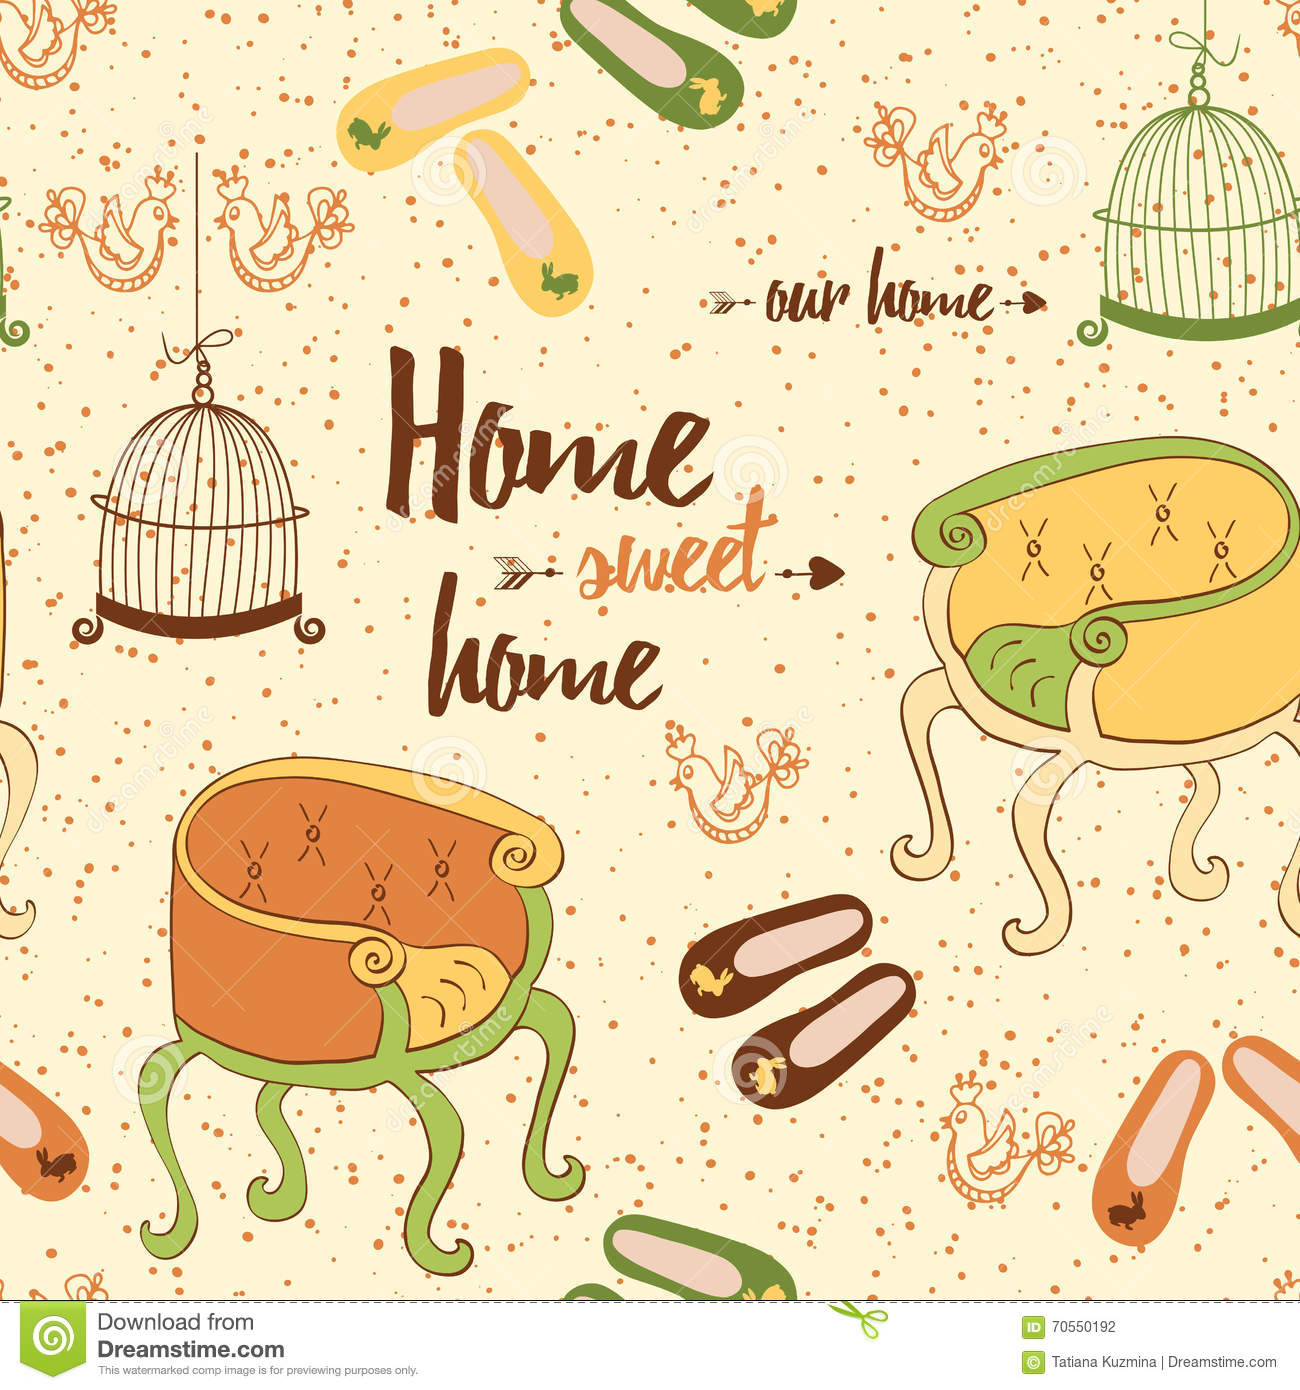 Seamless furniture pattern with cute colorful chairs, birds cage, home shoes and phrase  Home sweet home .